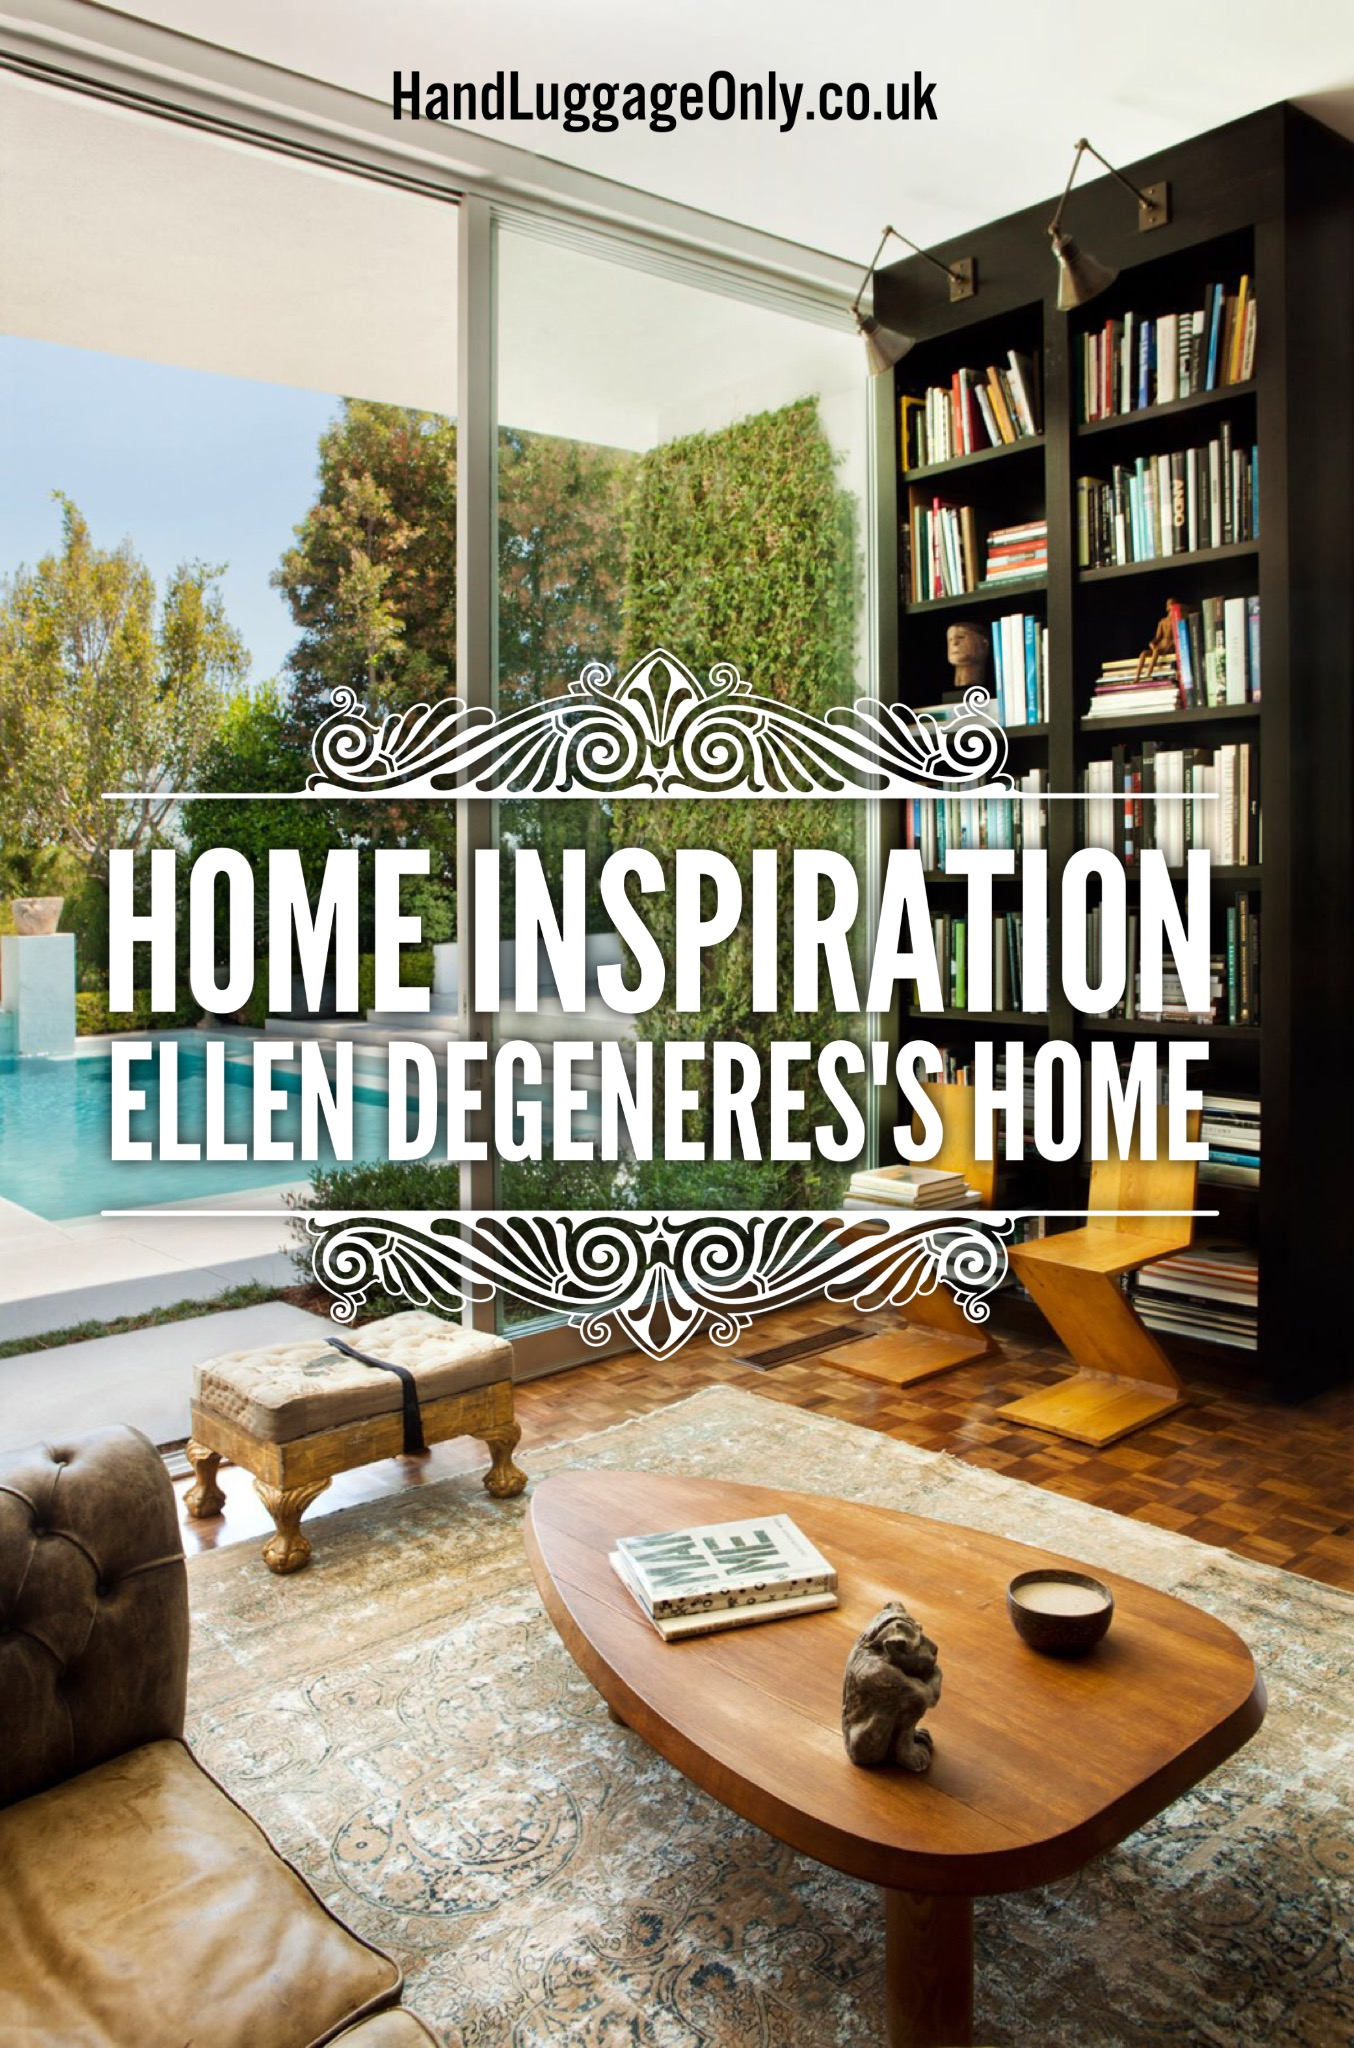 Home Inspiration: Ellen Degeneres 's Californian Home Renovation Project